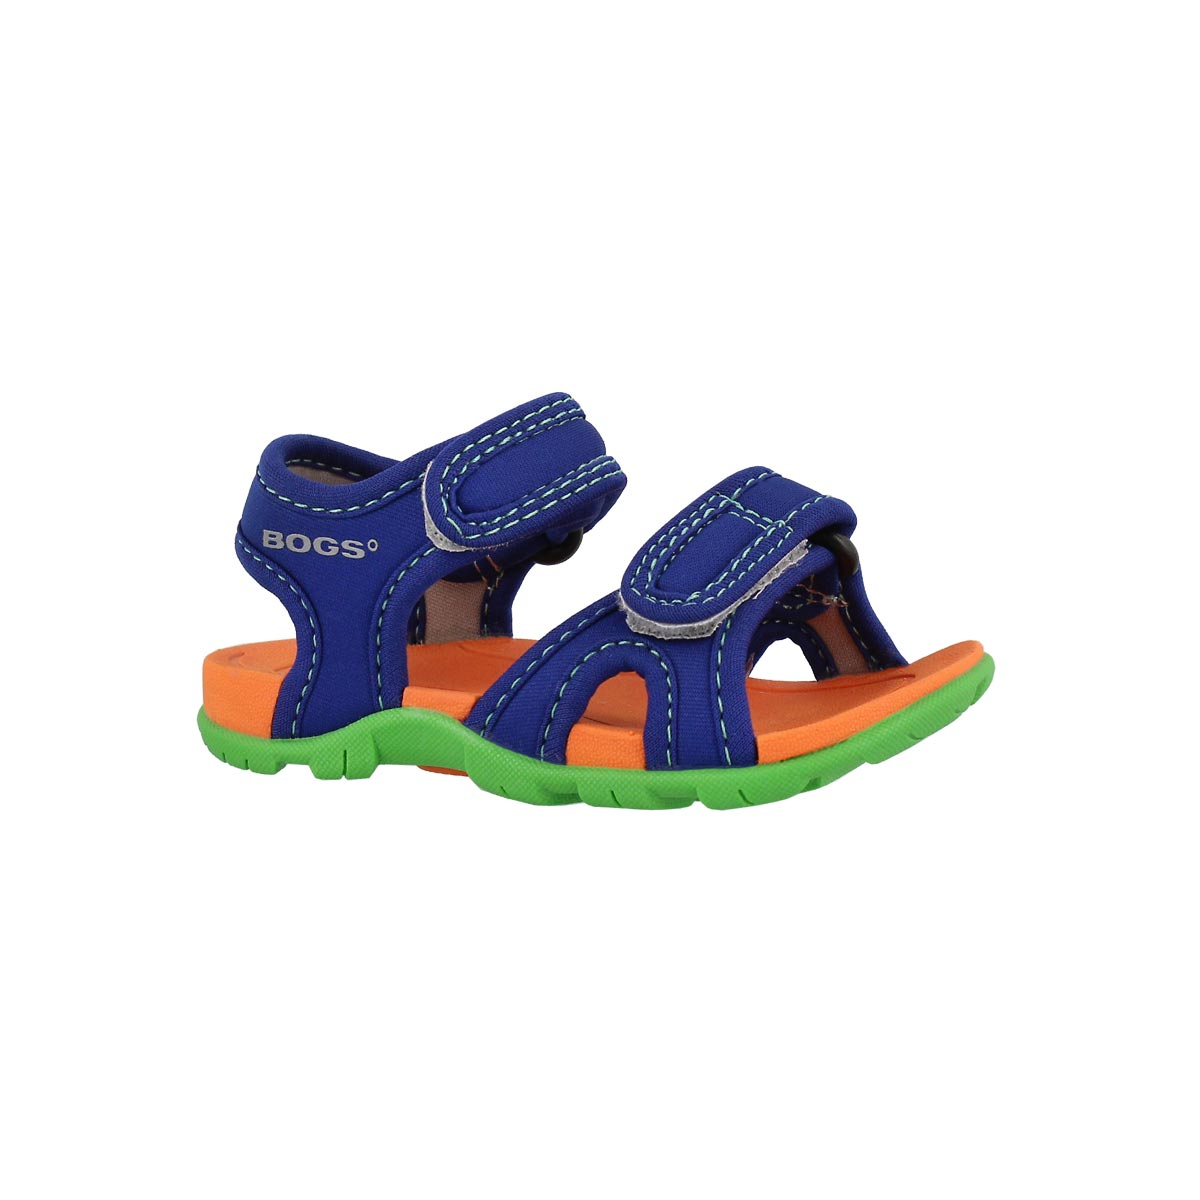 Infants' WHITEFISH SOLID bl mlt waterproof sandals